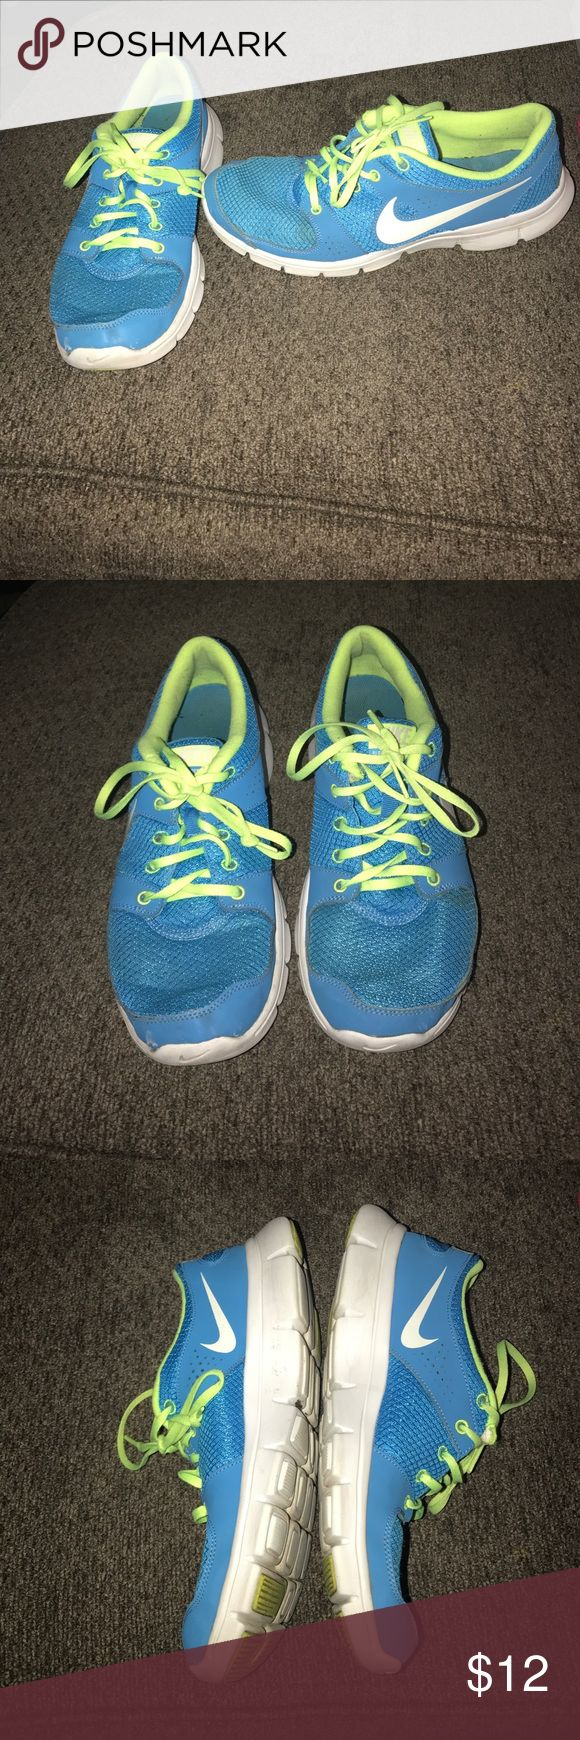 Nike Flex Running Shoes Nike flex running shoes in blue and neon green. Good condition slight signs of wear but in great shape have a lot of life left in them. I bought them and maybe wore them 15 times. Nike Shoes Athletic Shoes